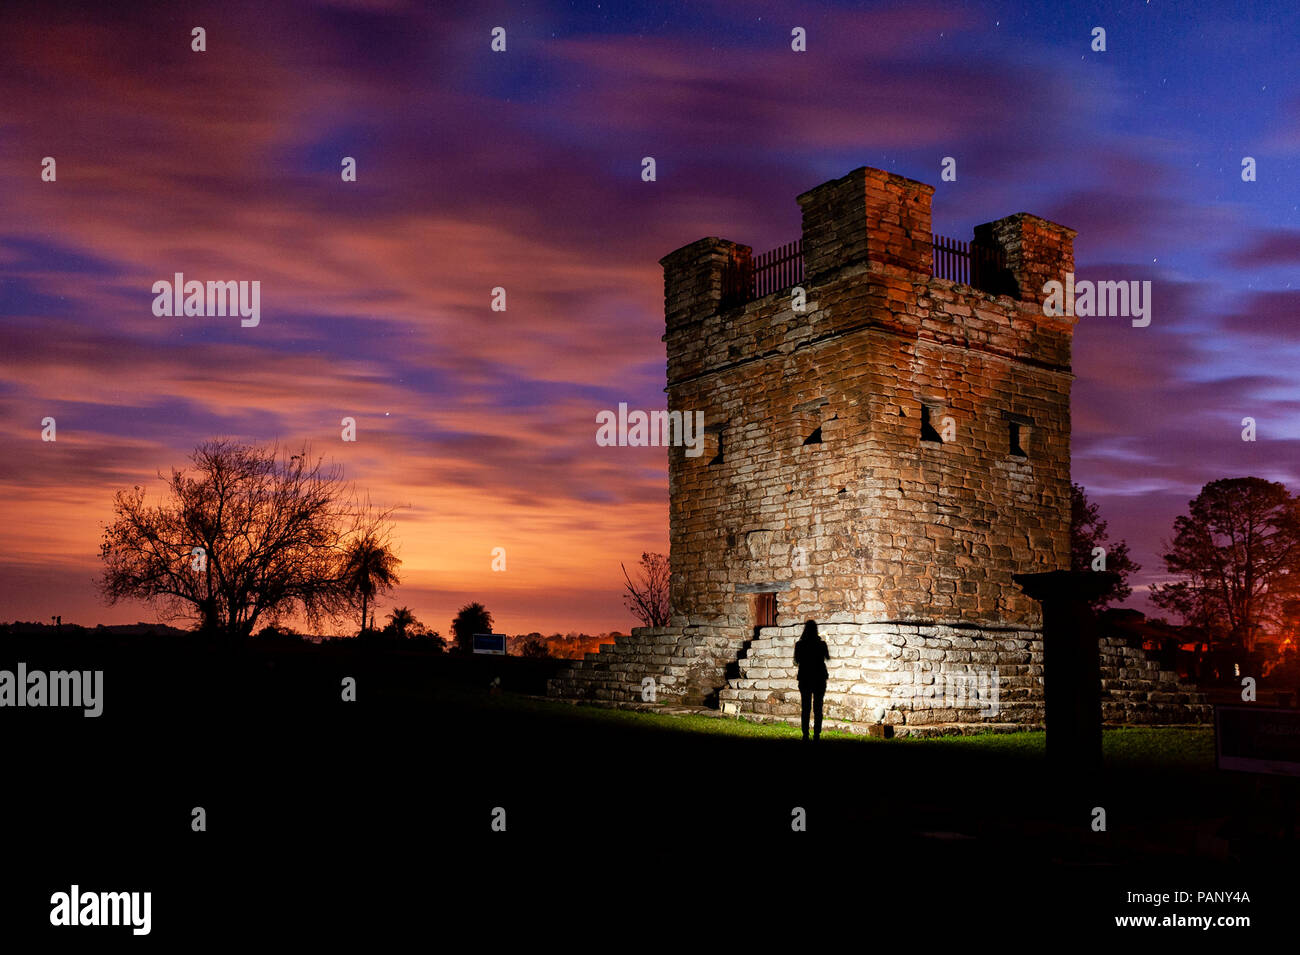 Illuminating belfry in Jesuit ruin during sunset - Stock Image